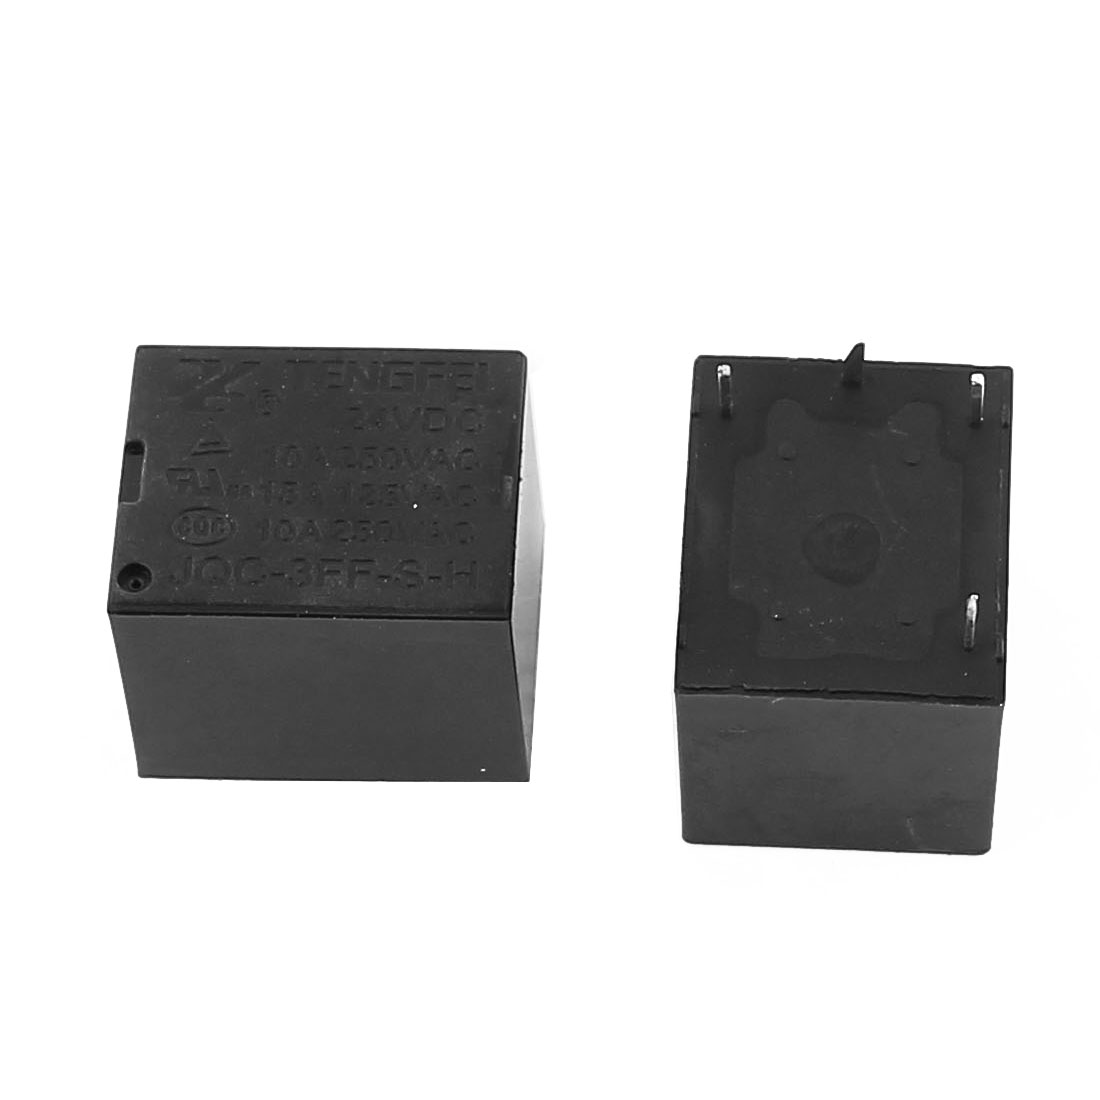 10 Pcs 24VDC 250VAC 10A 4 Terminal SPST NO  Power Coil Electromagnetic Relay - image 1 of 2